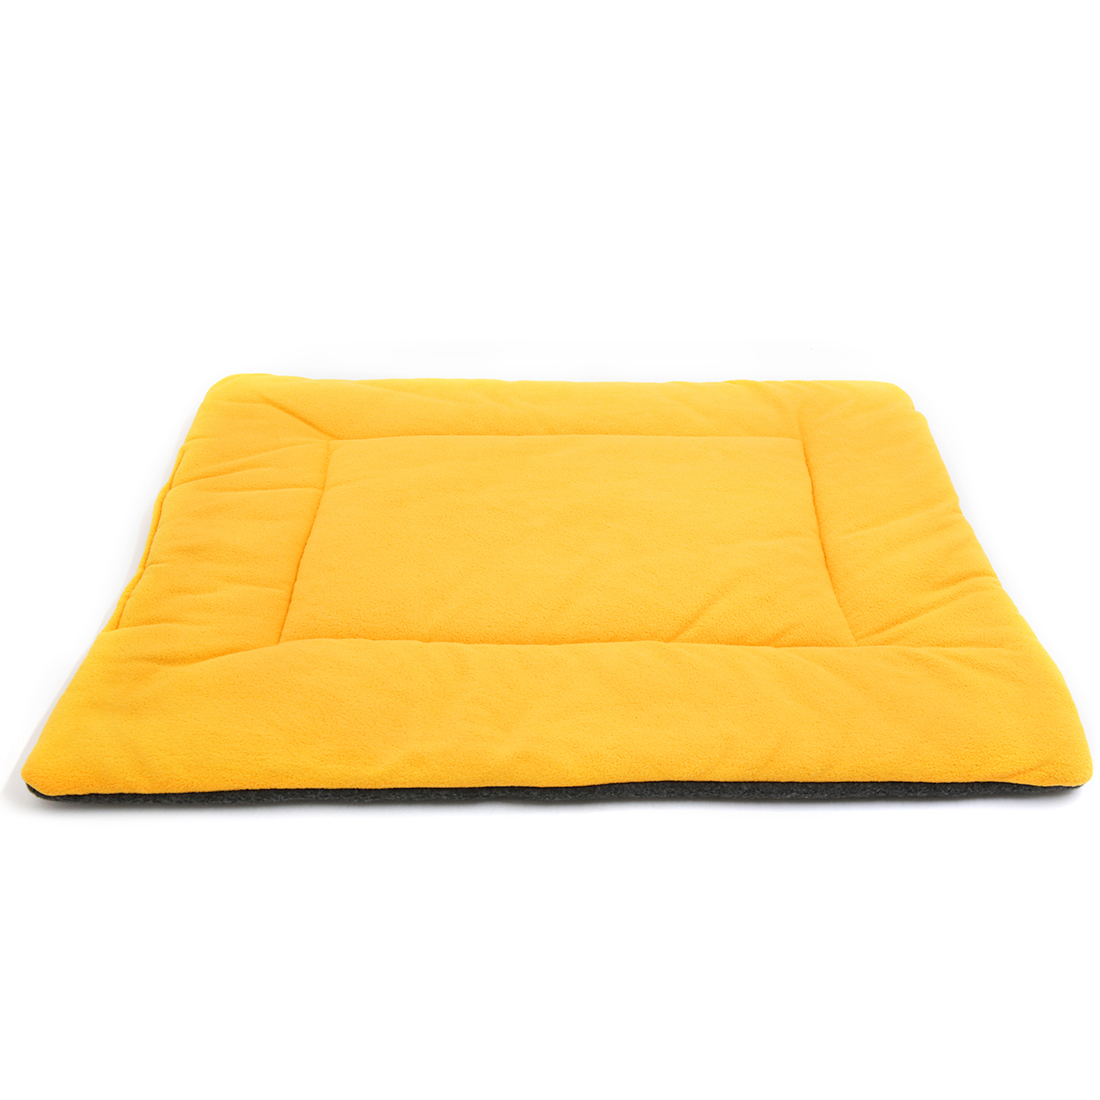 Fleece Reversible Mat Cushion Pad Bed for Dog Cat Puppy Pet Yellow S